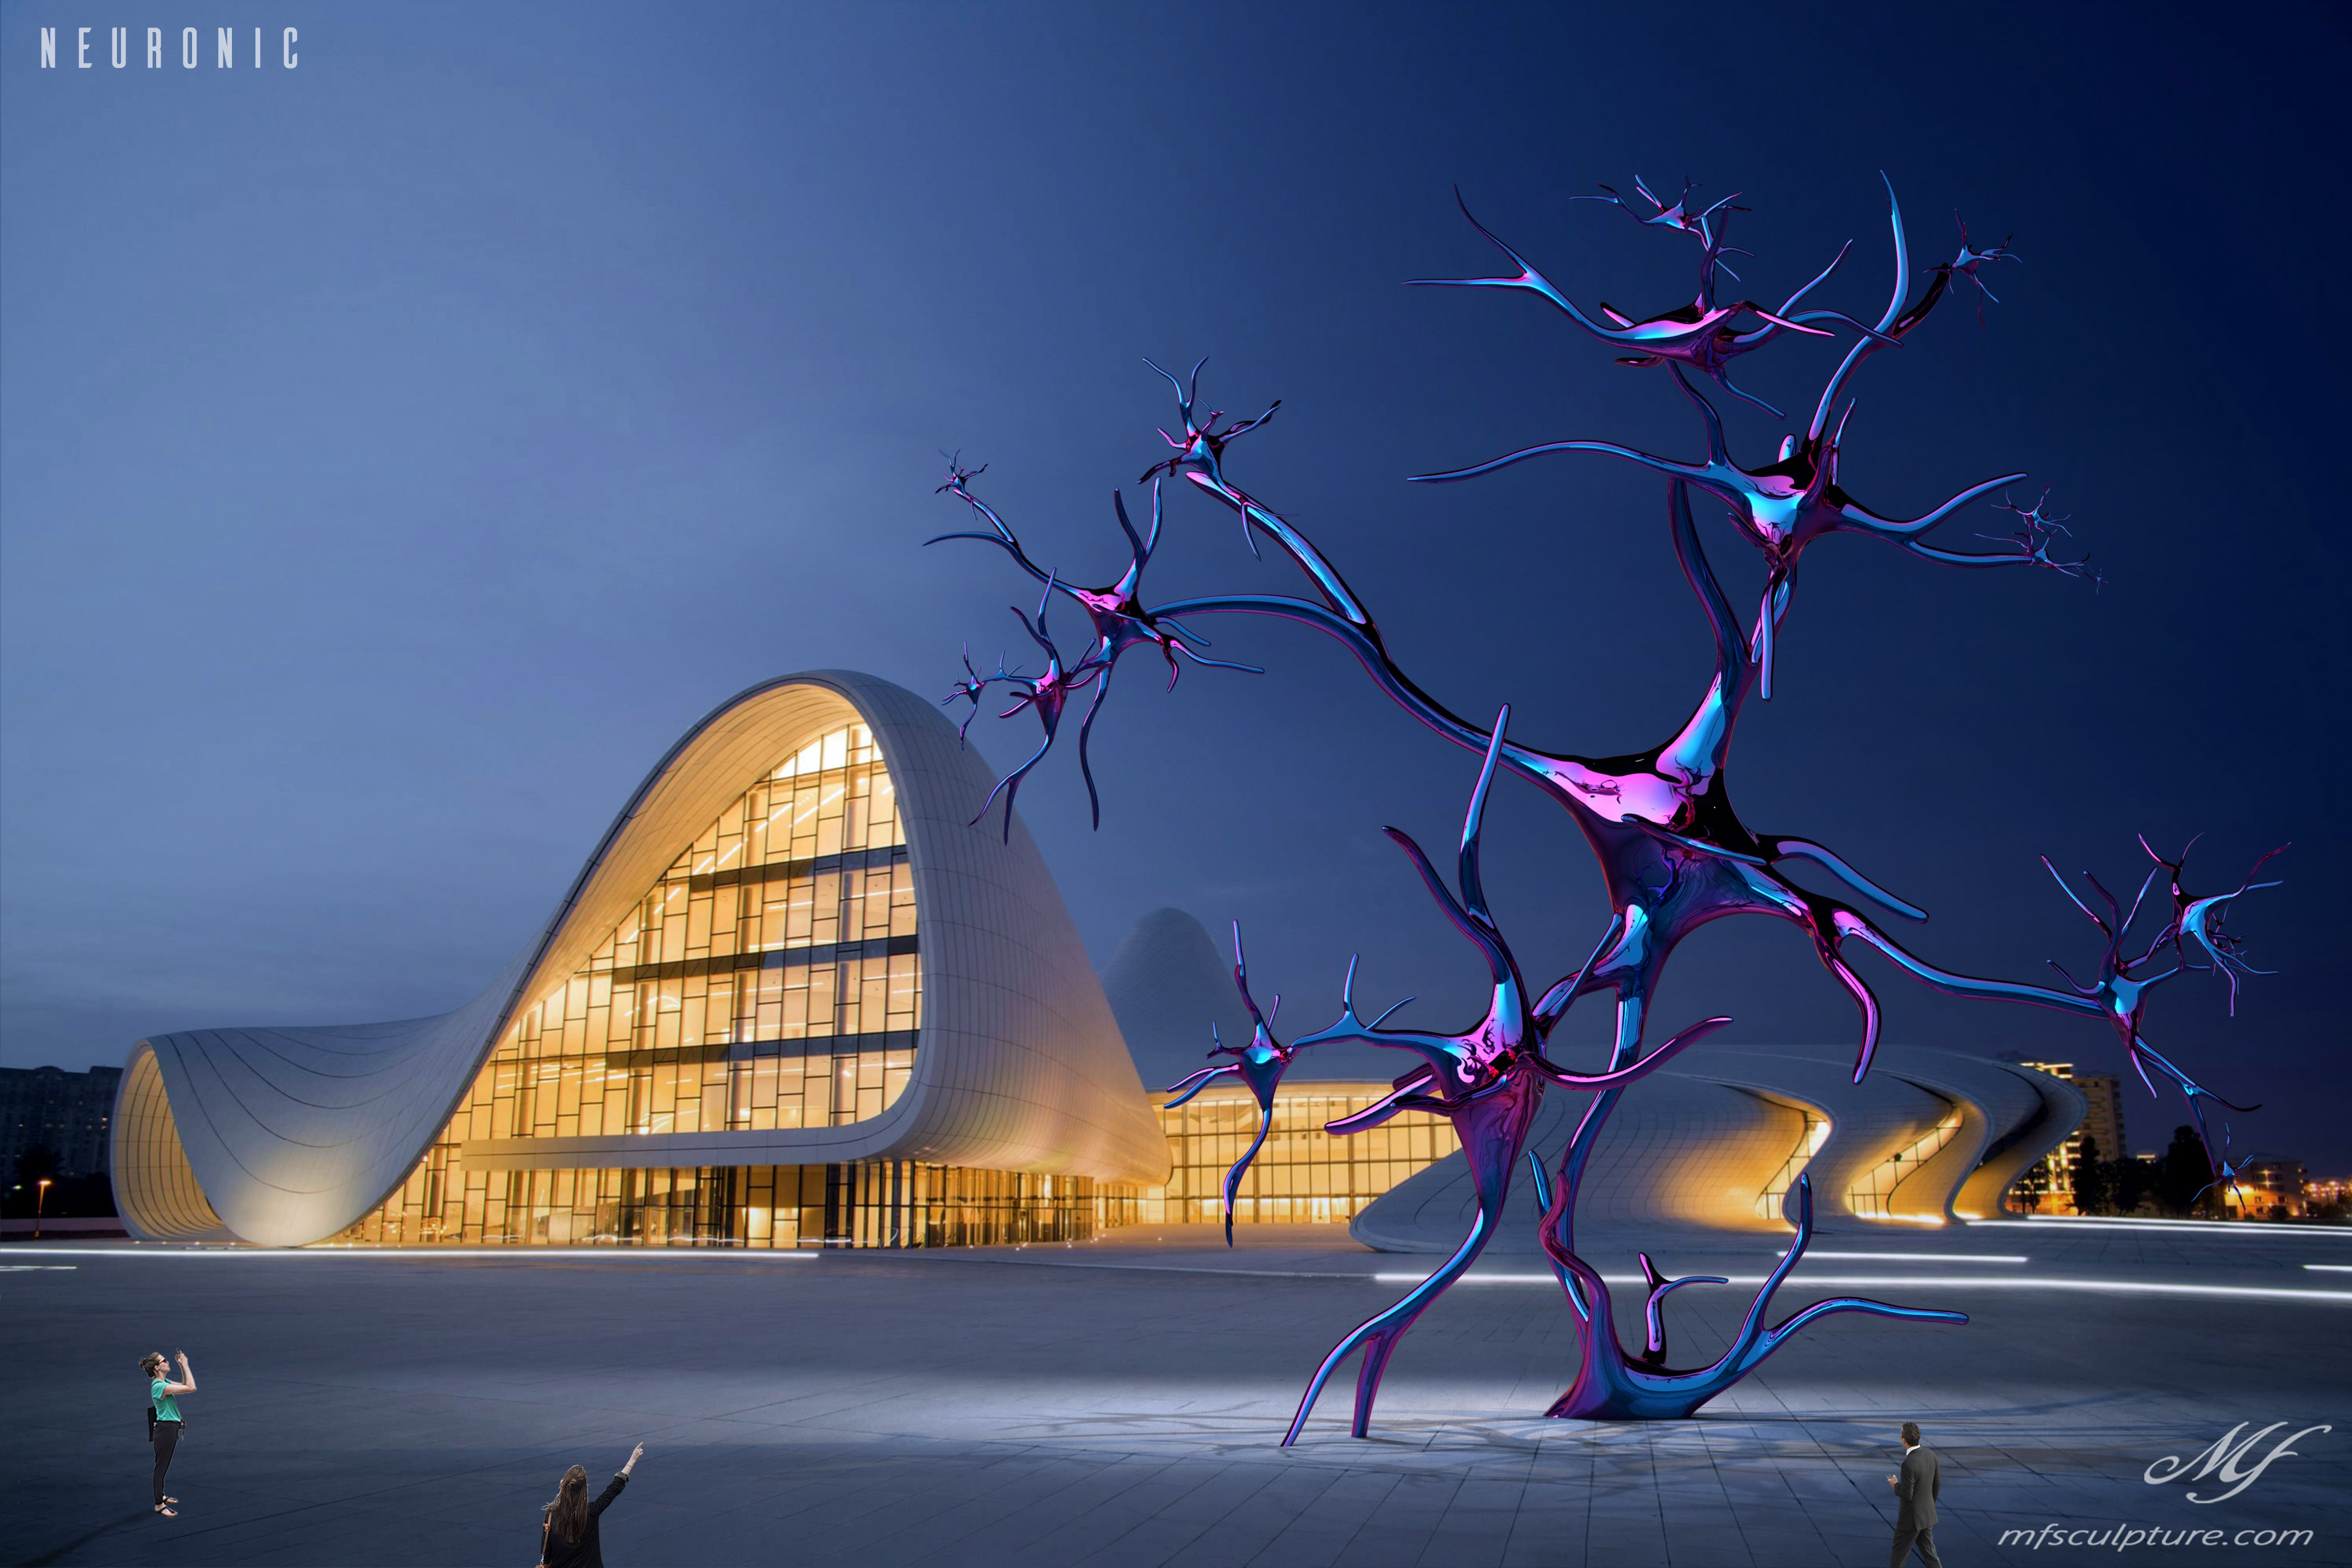 heydar aliyev center baku zaha hadid Modern Sculpture Neuronic Neuron Brain 4